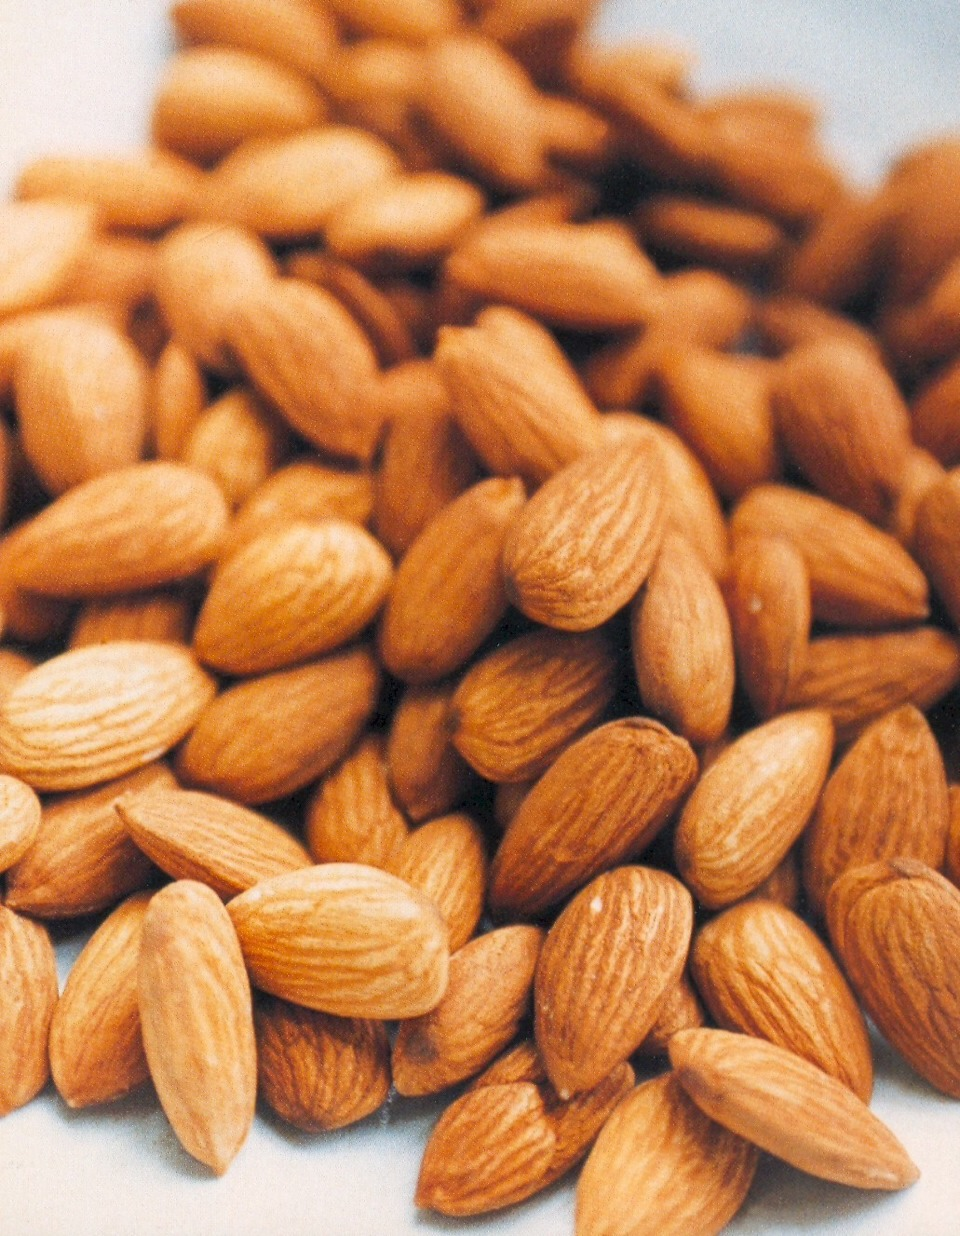 Applying almond oil to your face at night after you wash it will help give your skin the moisturizing it needs and if also helps with acne. Using it often will also help your skin seem younger as you age.